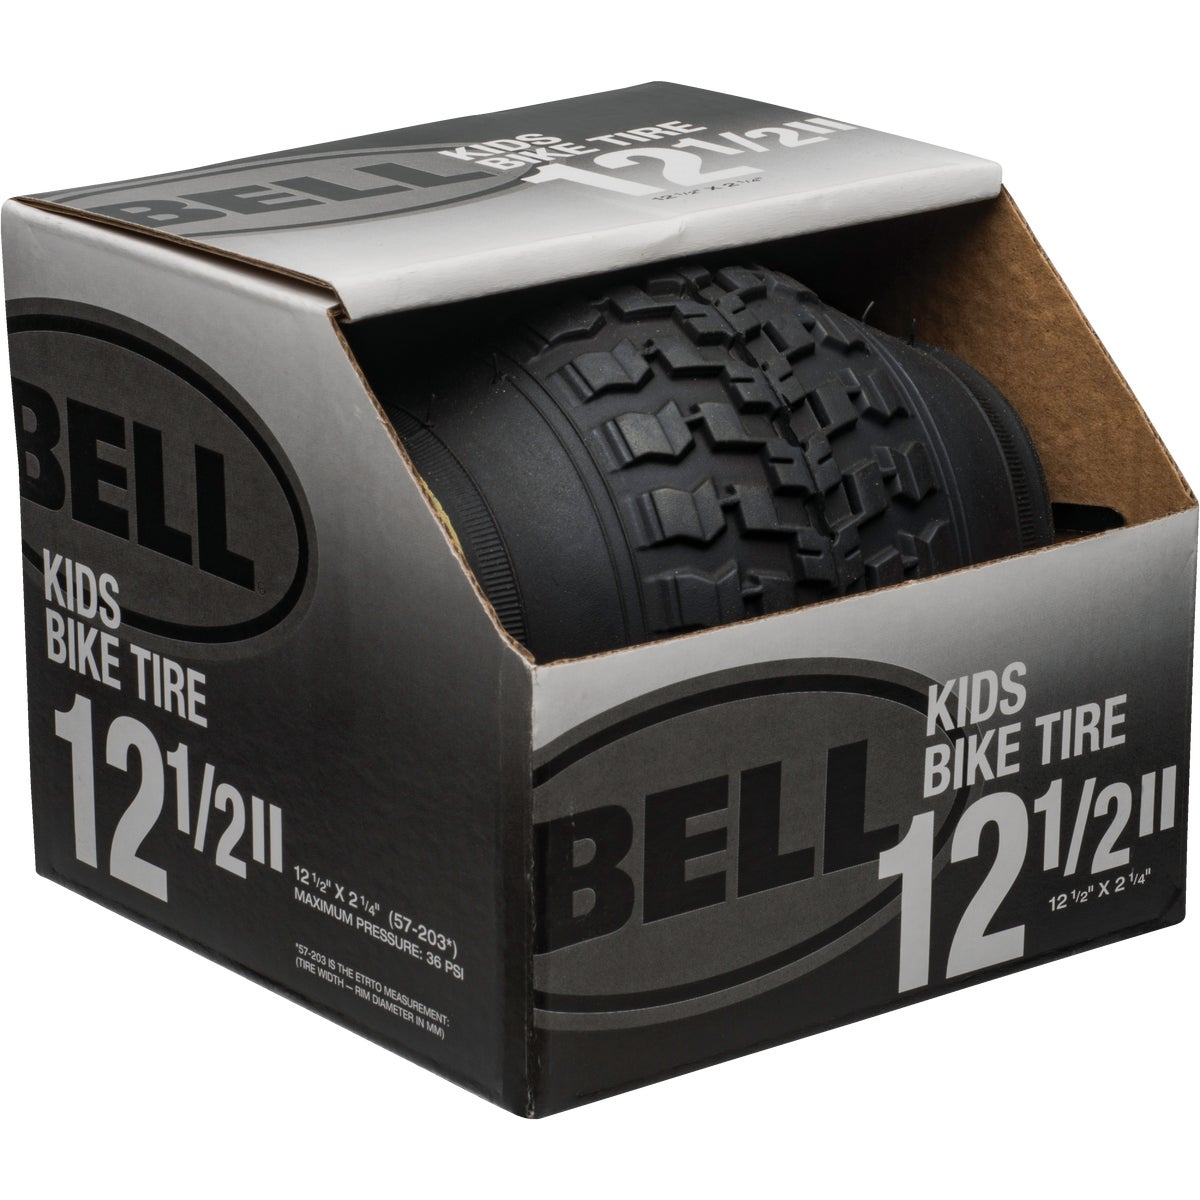 "12.5"" BLK BMX TIRE - 7020238 by Bell Sports"